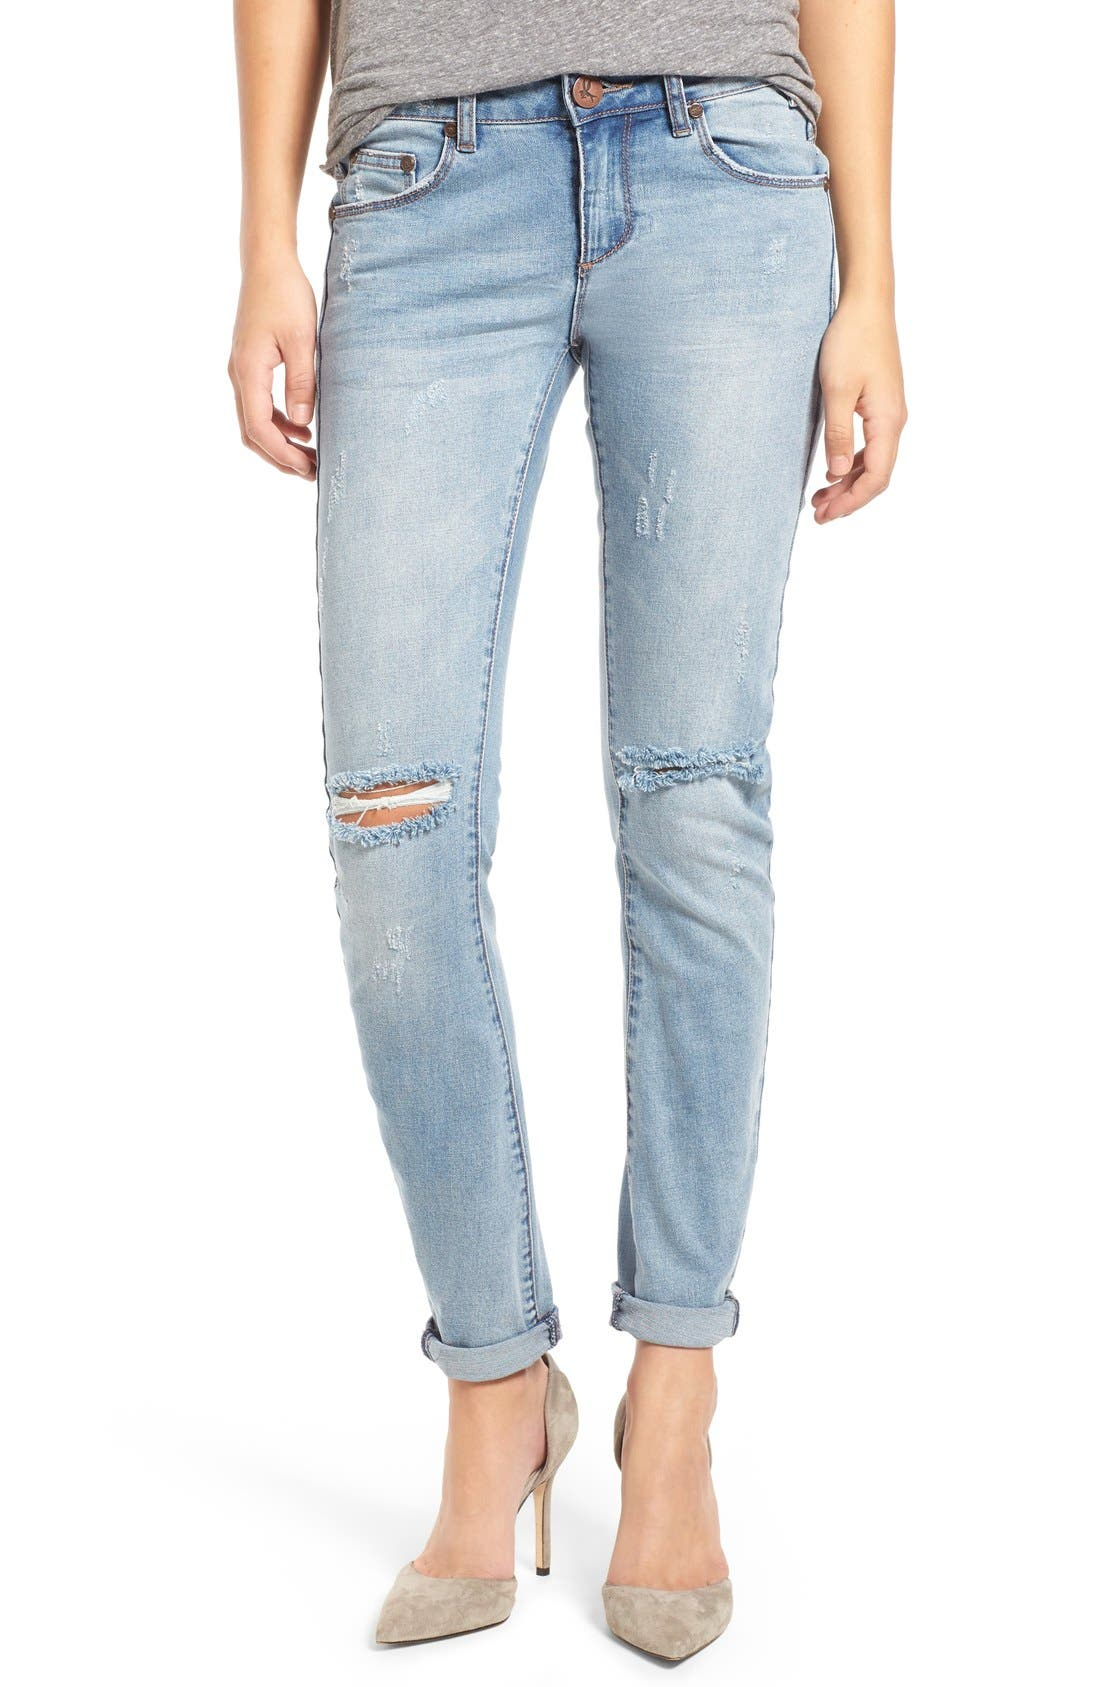 ONE TEASPOON Distressed Skinny Jeans, Main, color, 400